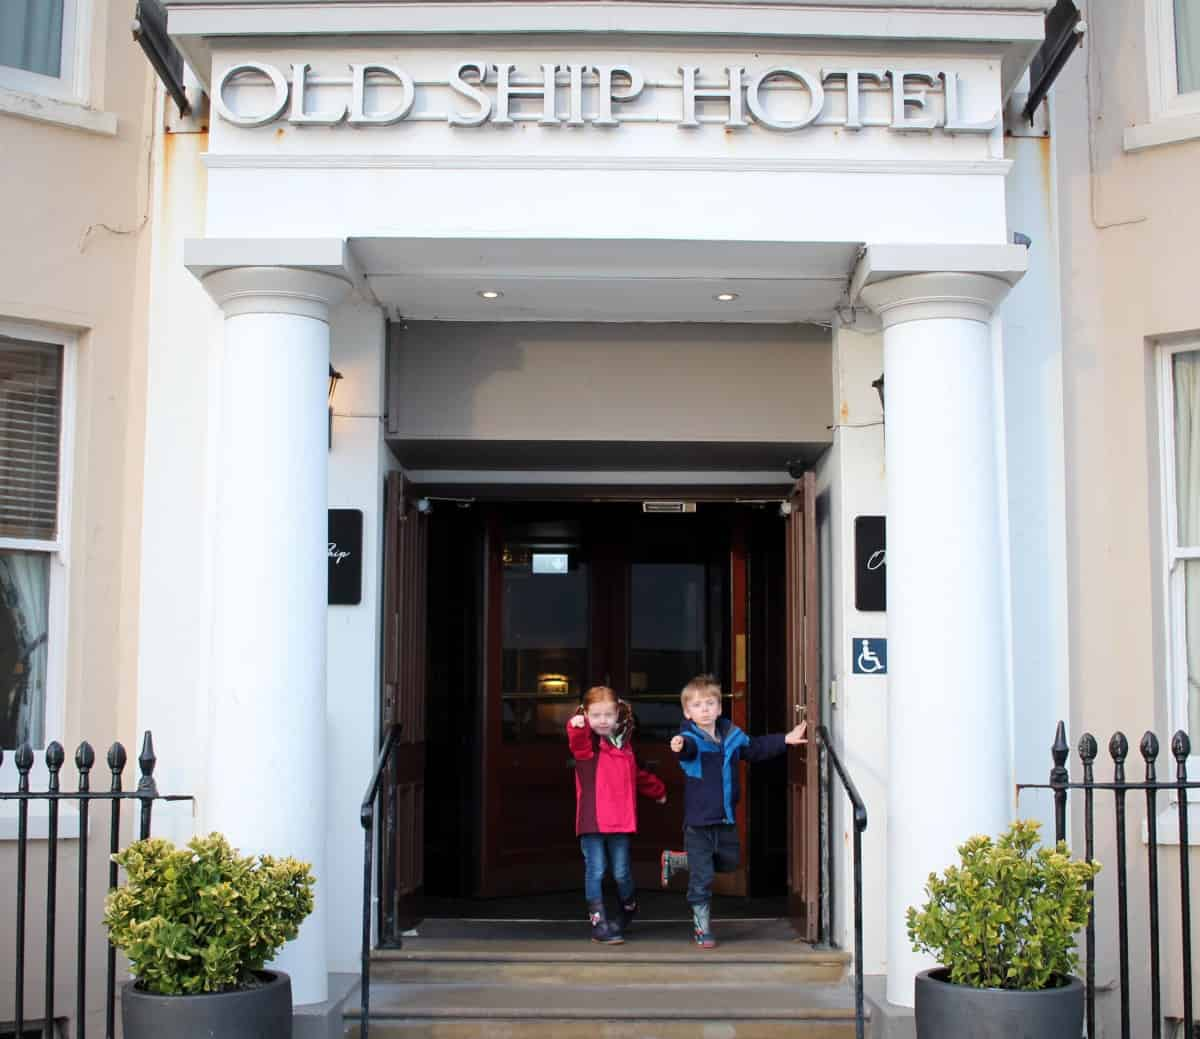 A Family Weekend at The Old Ship Hotel - Brighton